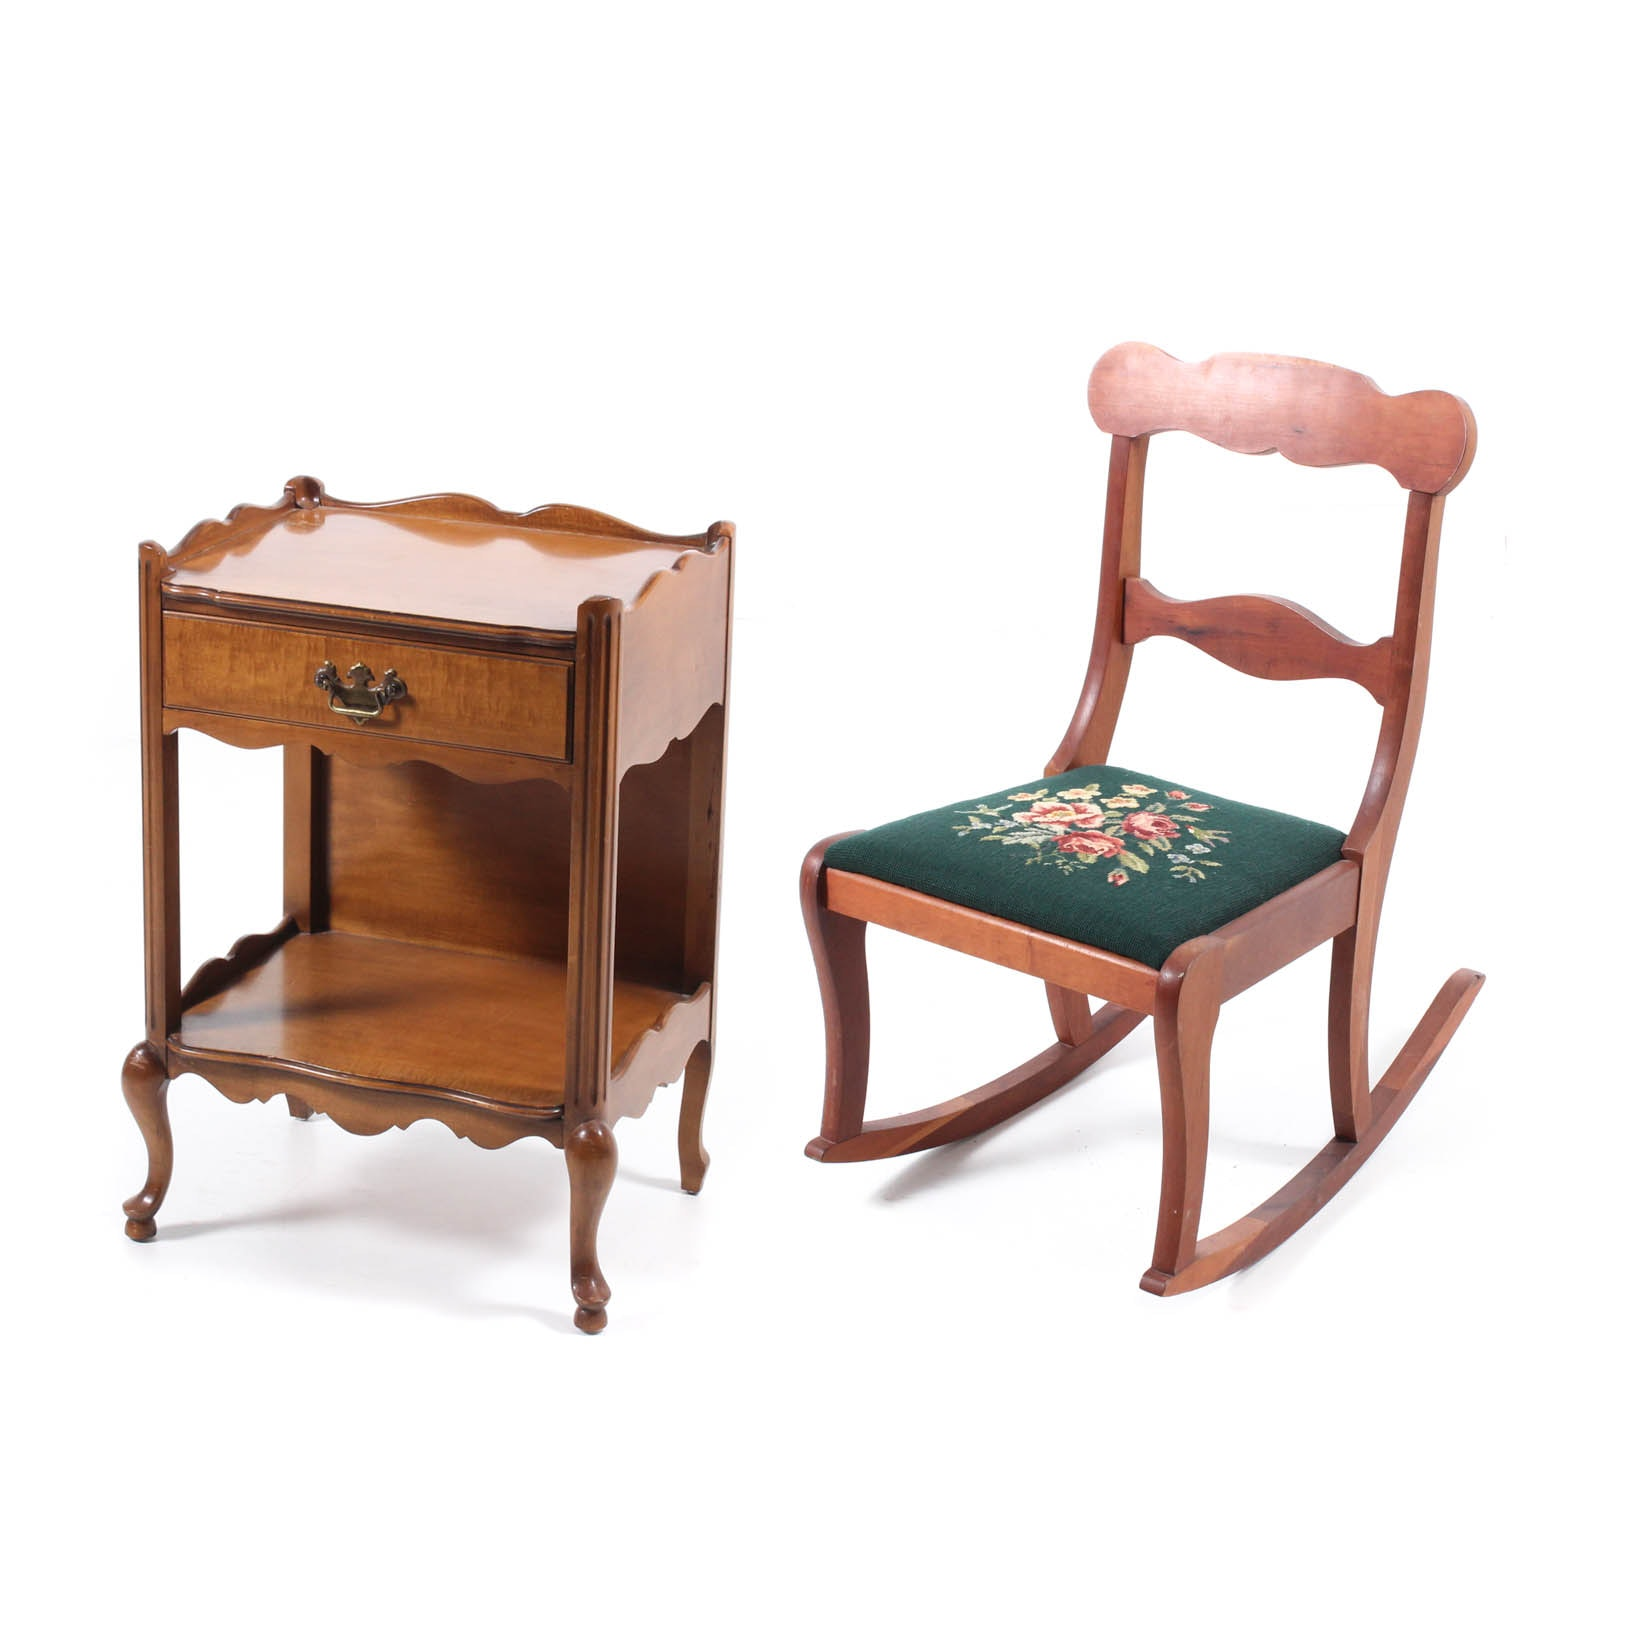 Vintage Needlepoint Rocker and Nightstand